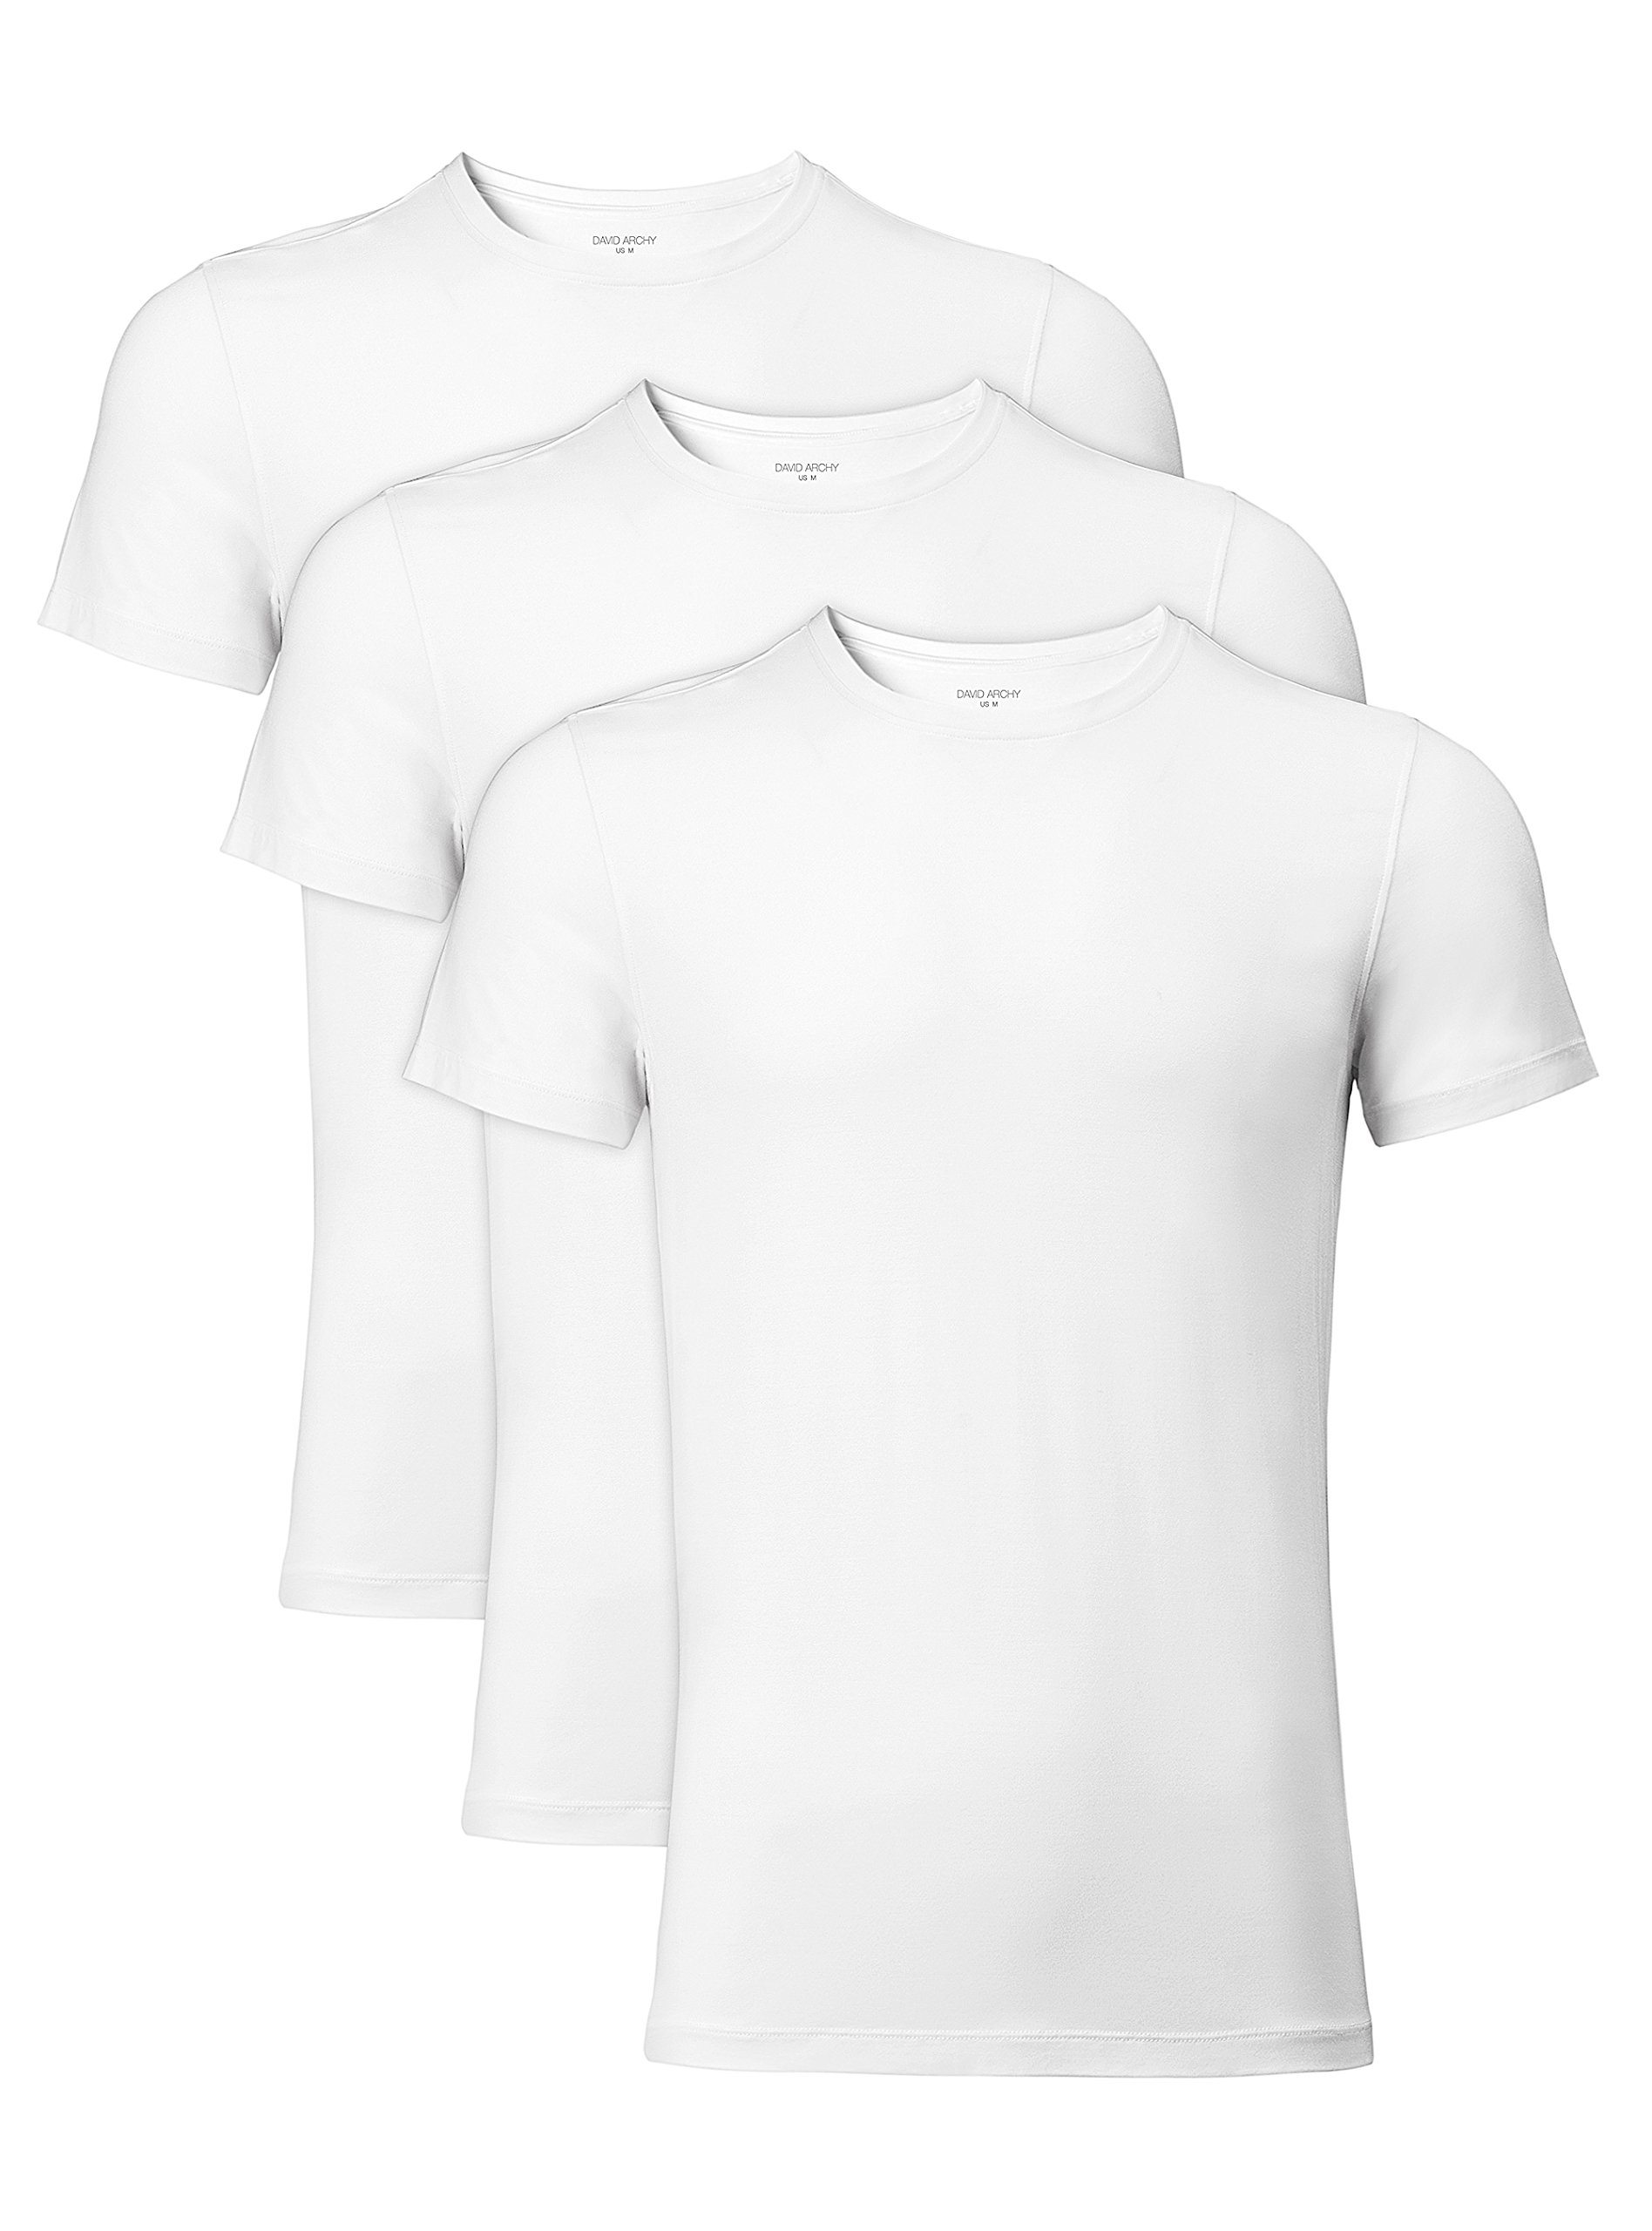 David Archy Men's 3 Pack Soft Comfy Bamboo Rayon Undershirts Breathable Crew Neck Slim Fit Tees Short Sleeve T-Shirts (L, White)